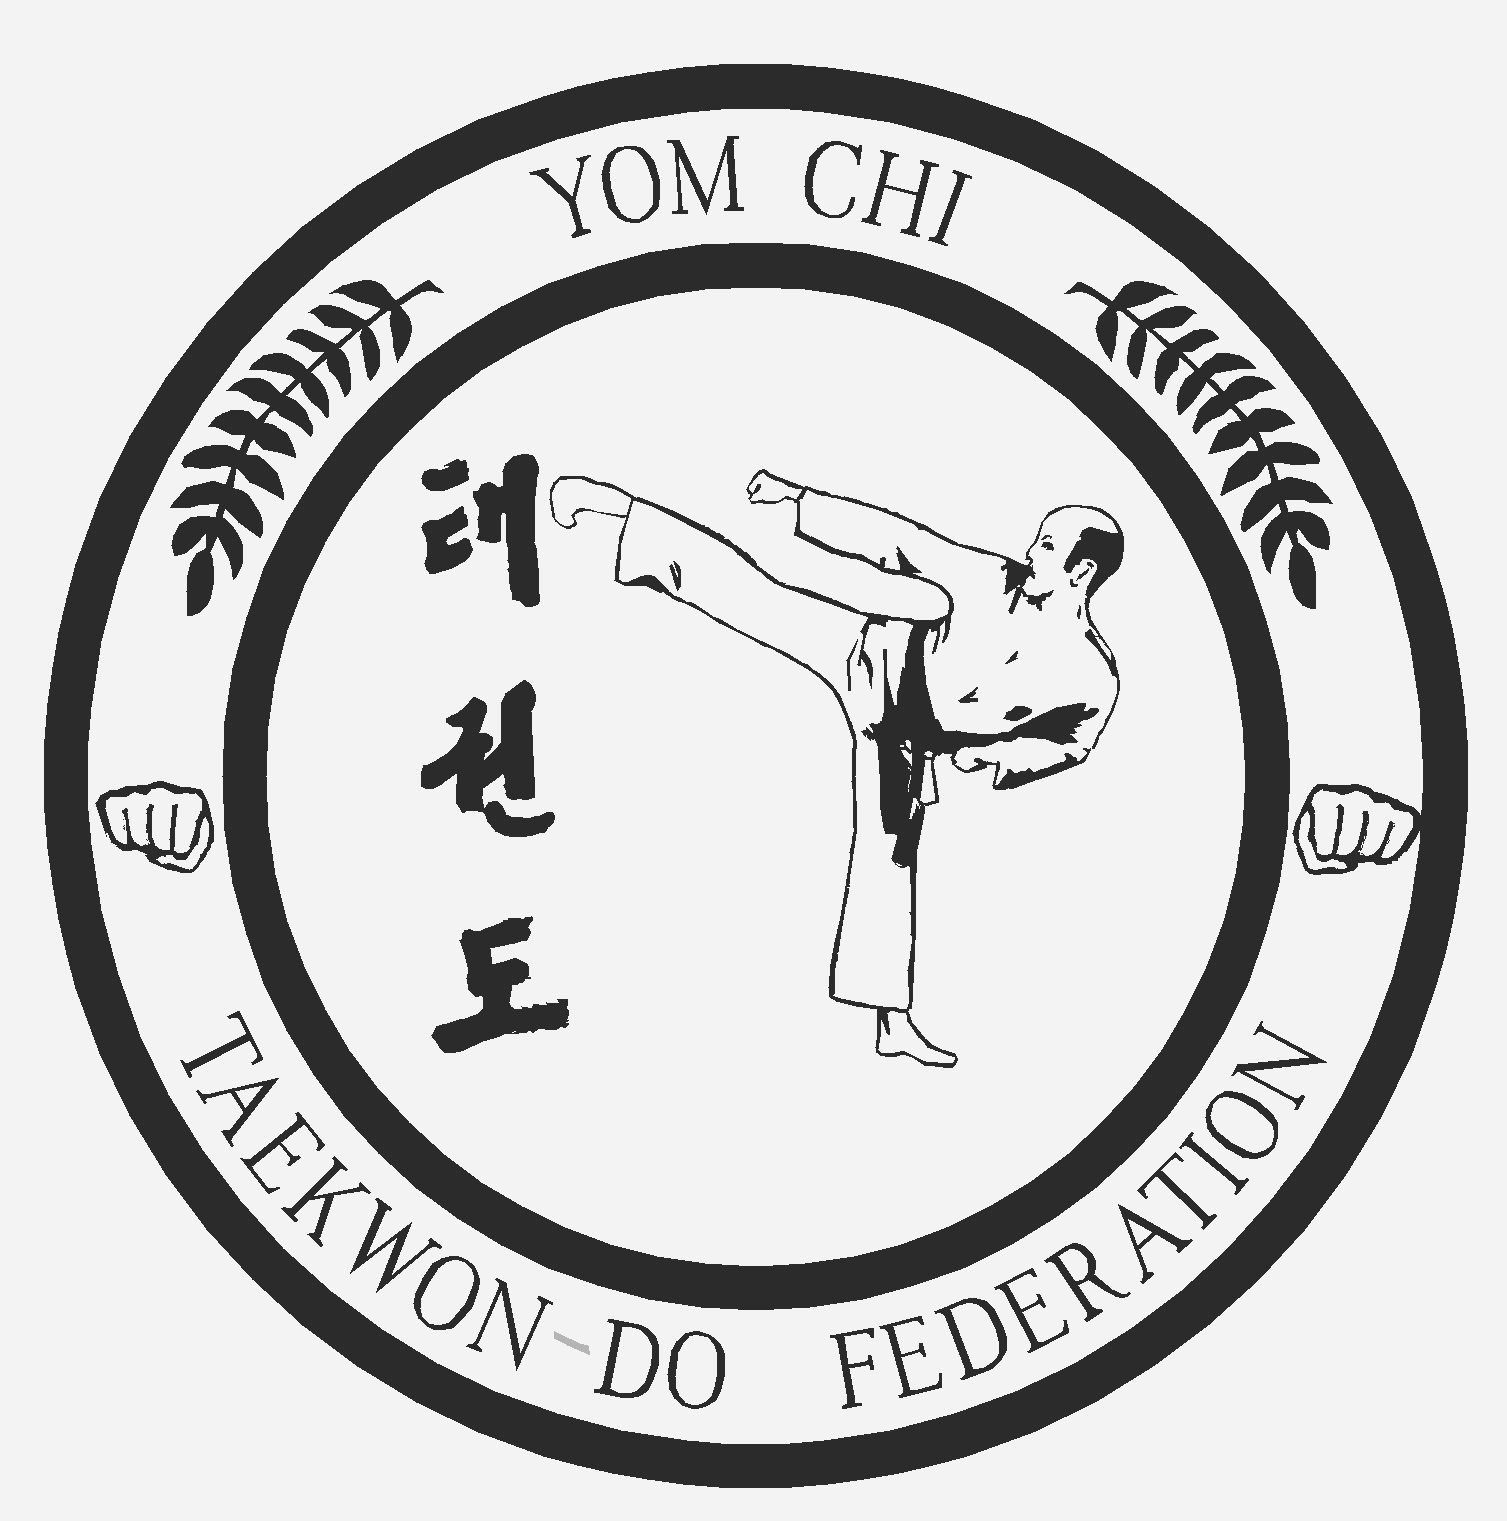 Link to Yom Chi TaeKwon-Do Federation Homepage